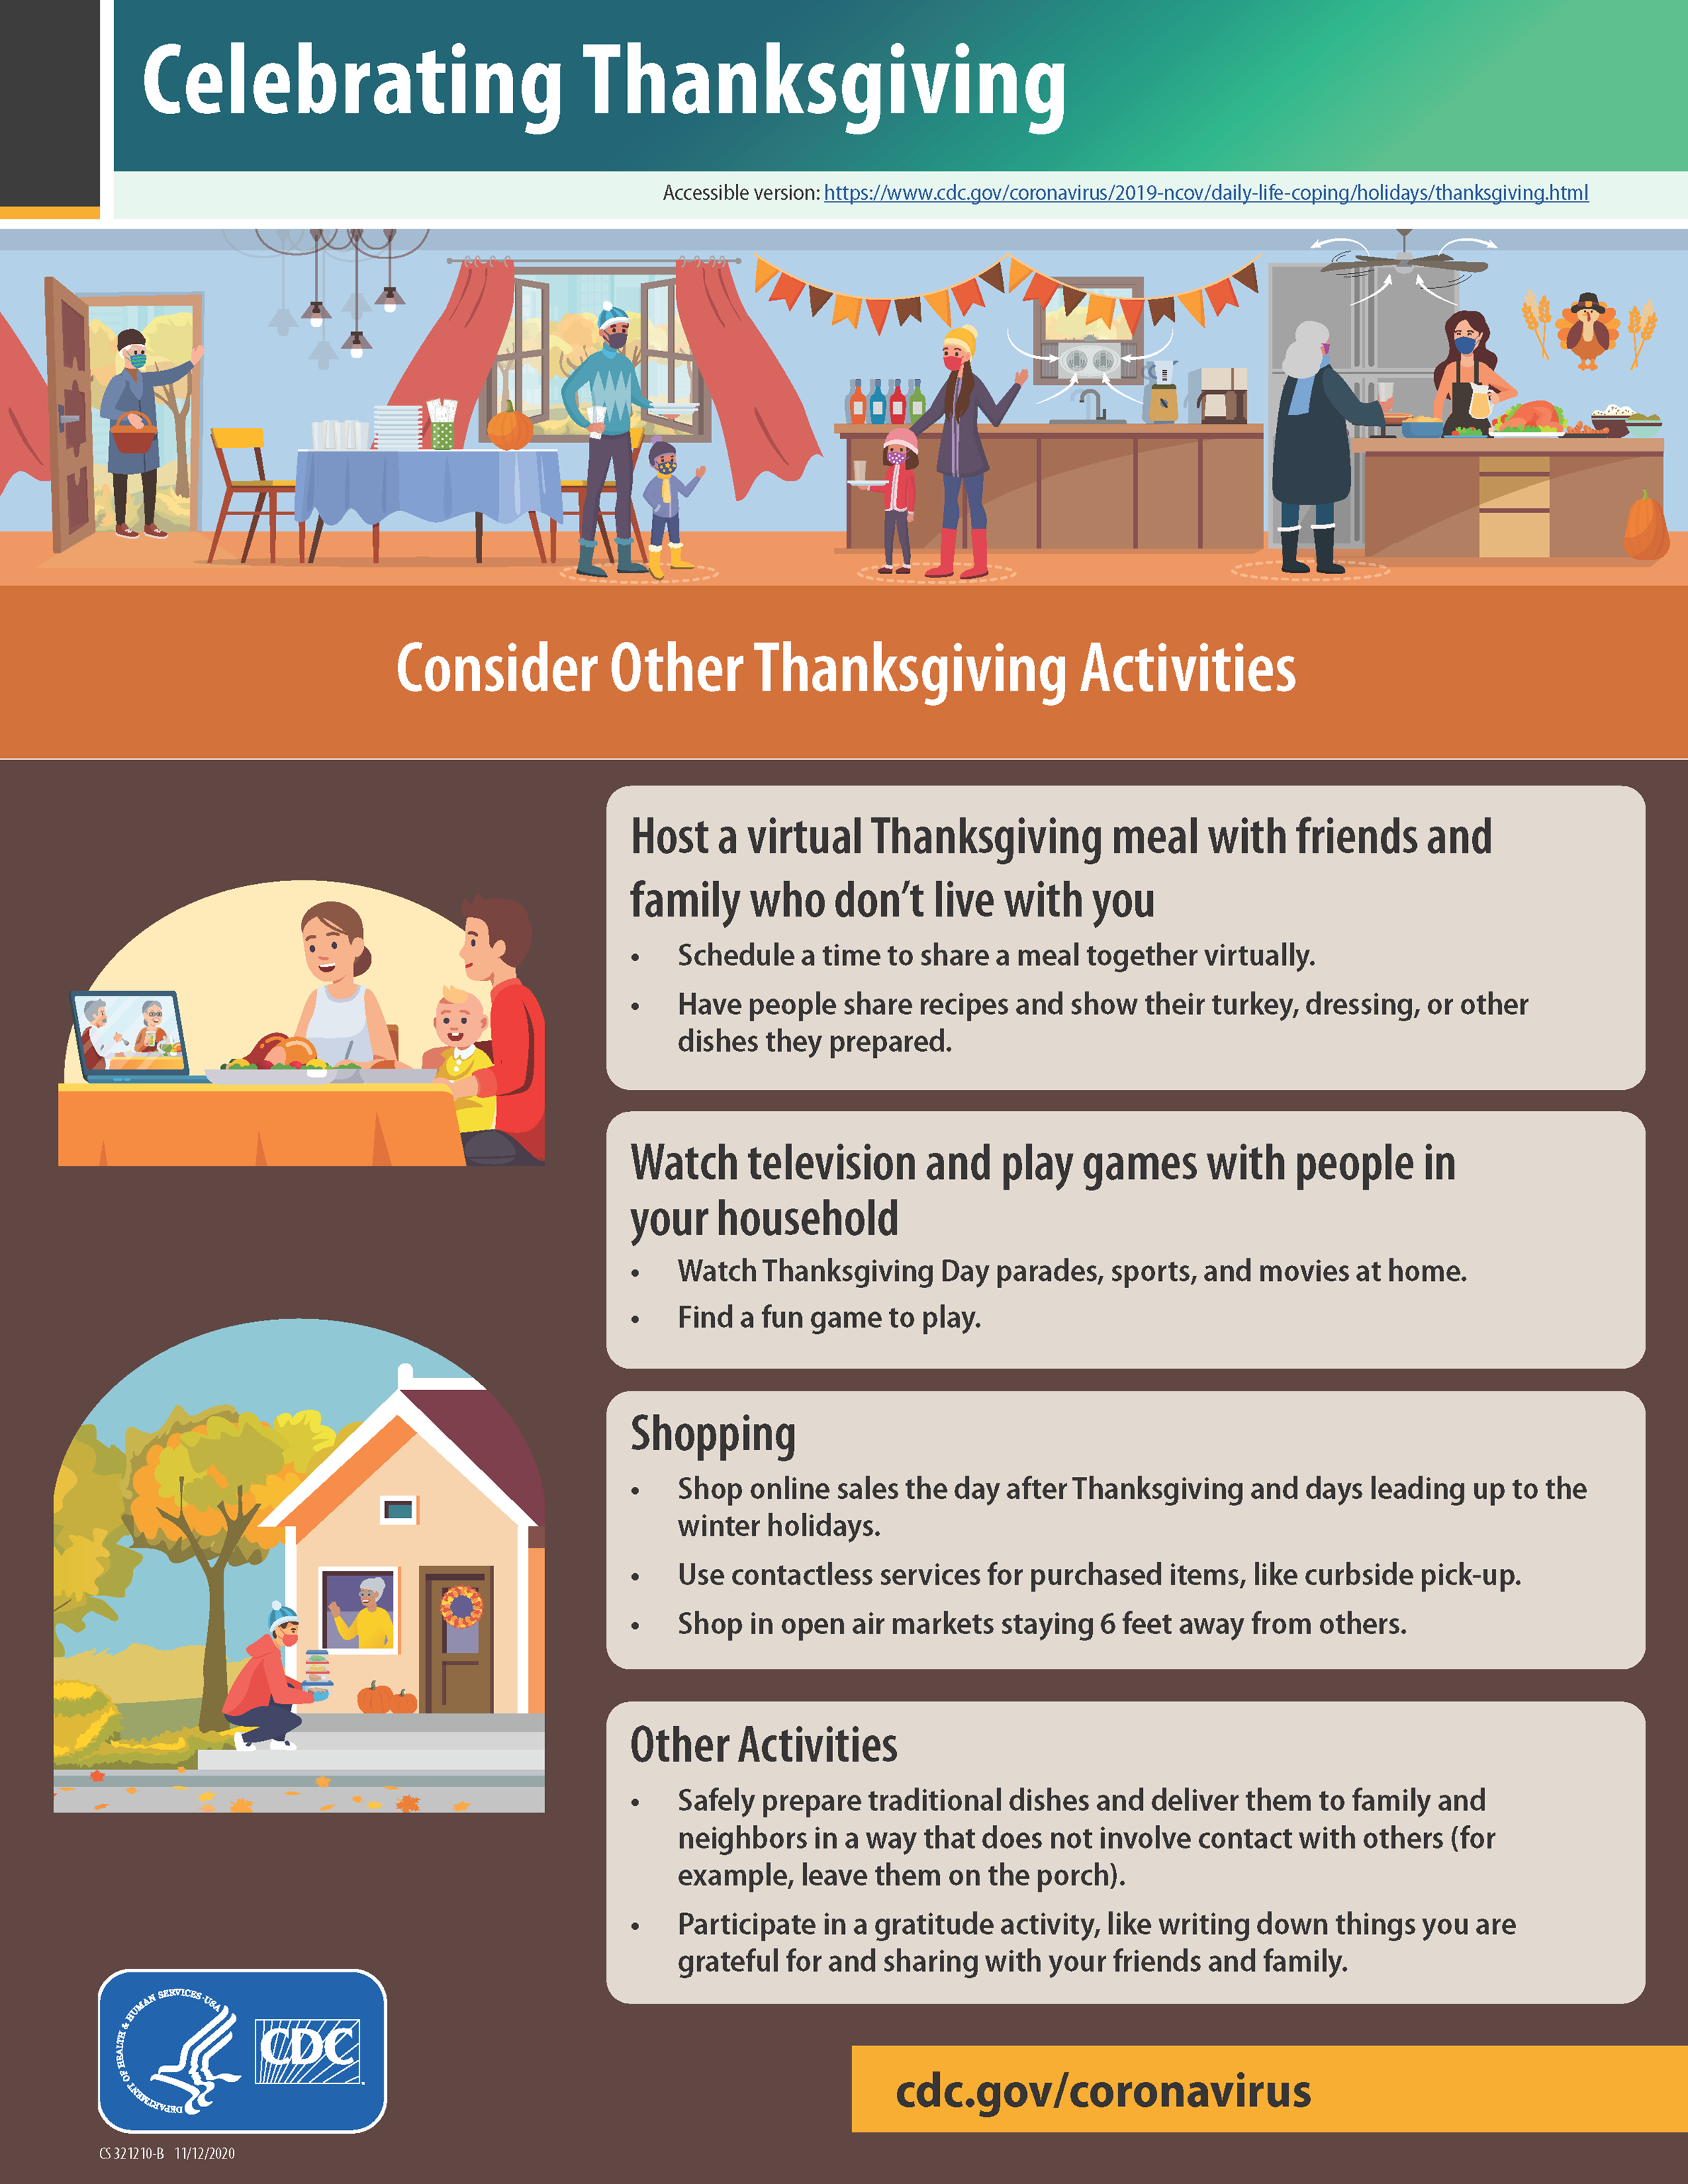 CDC: Other Thanksgiving Activities (Accessible Link below this image)